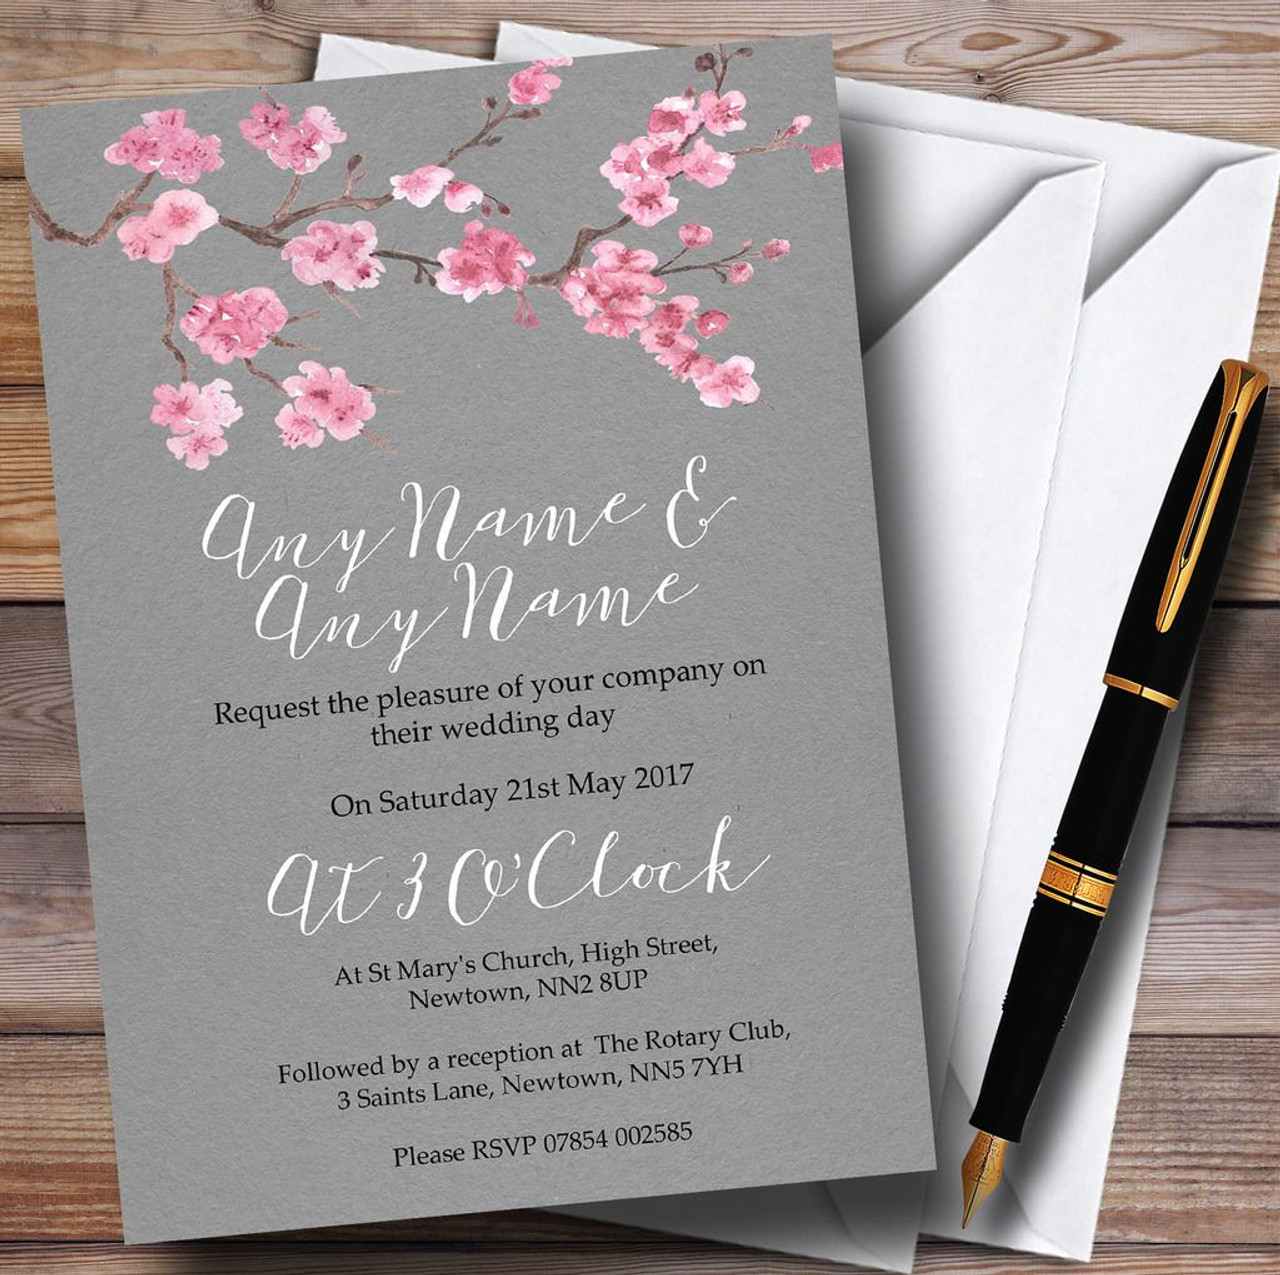 Rustic Vintage Dark Grey & Pink Blossom Personalized Wedding Invitations -  Red Heart Print